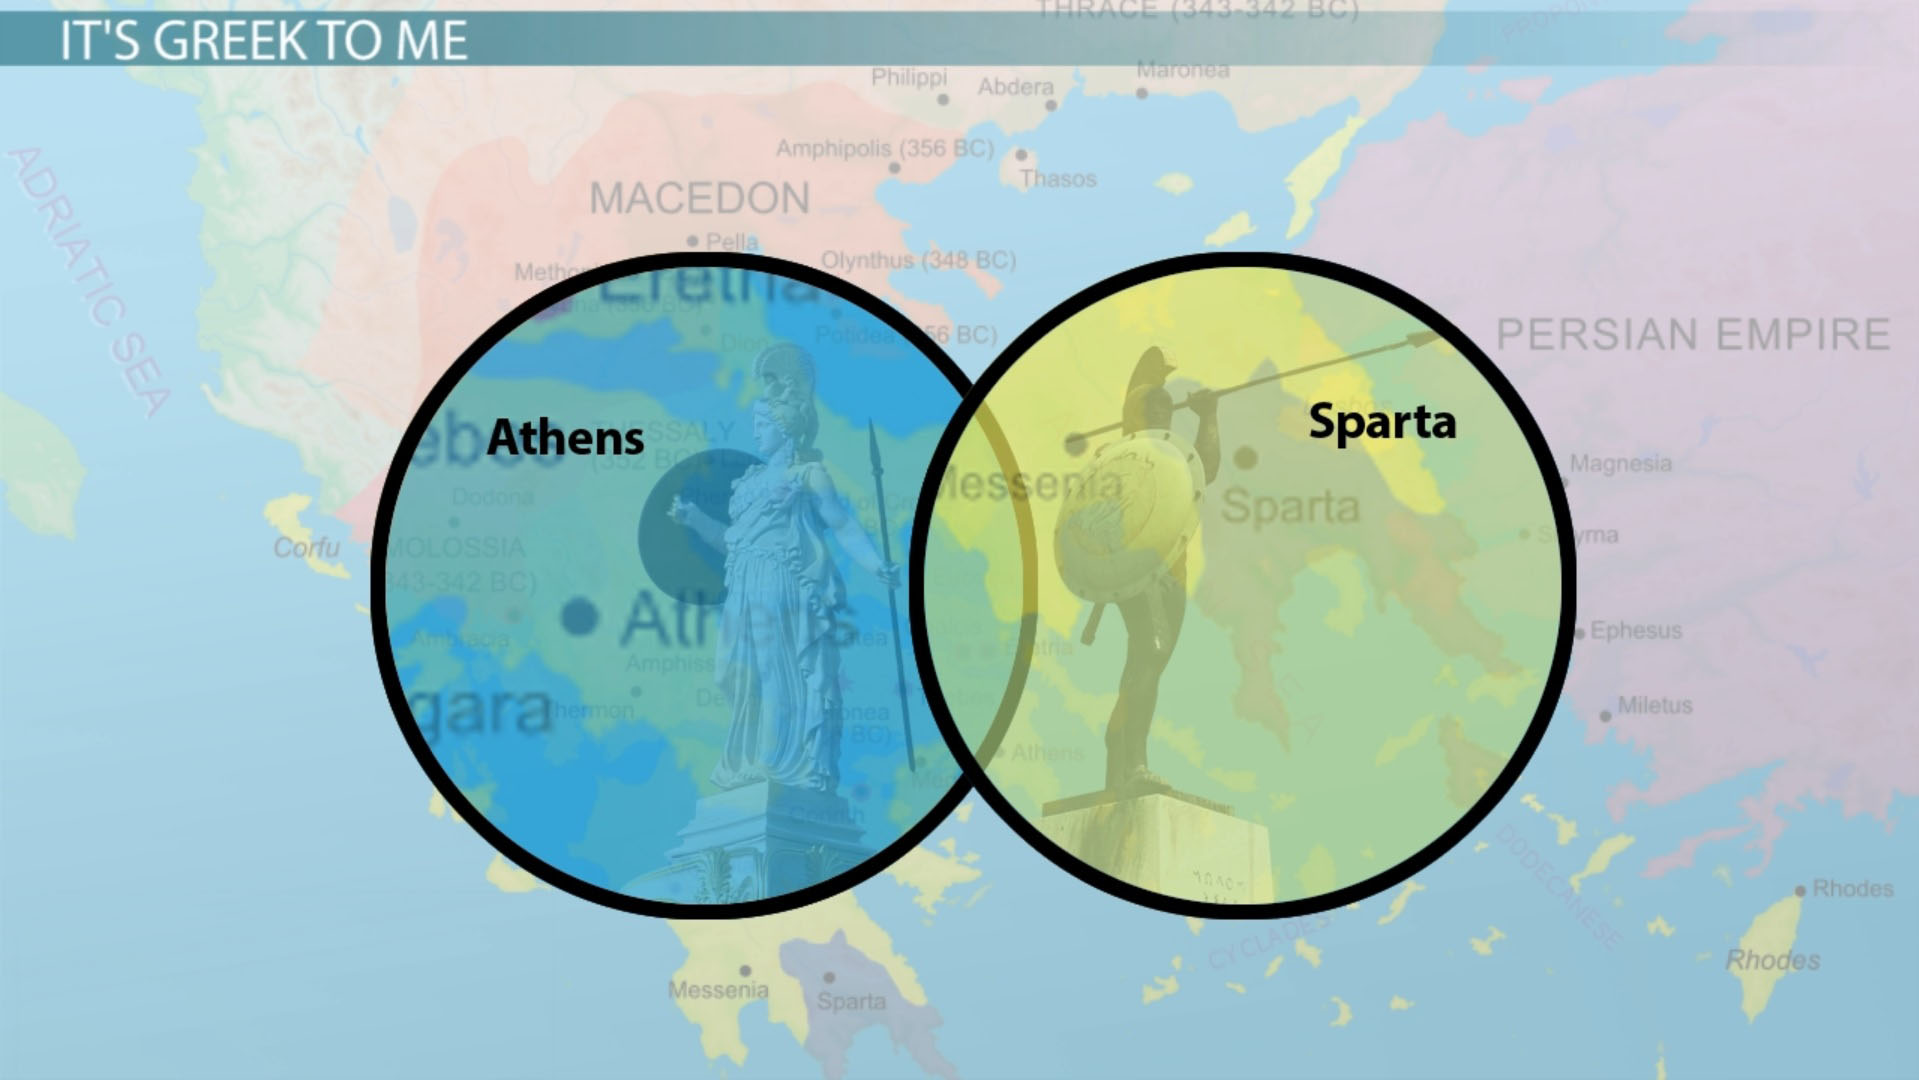 Economic activities of Athens and Sparta